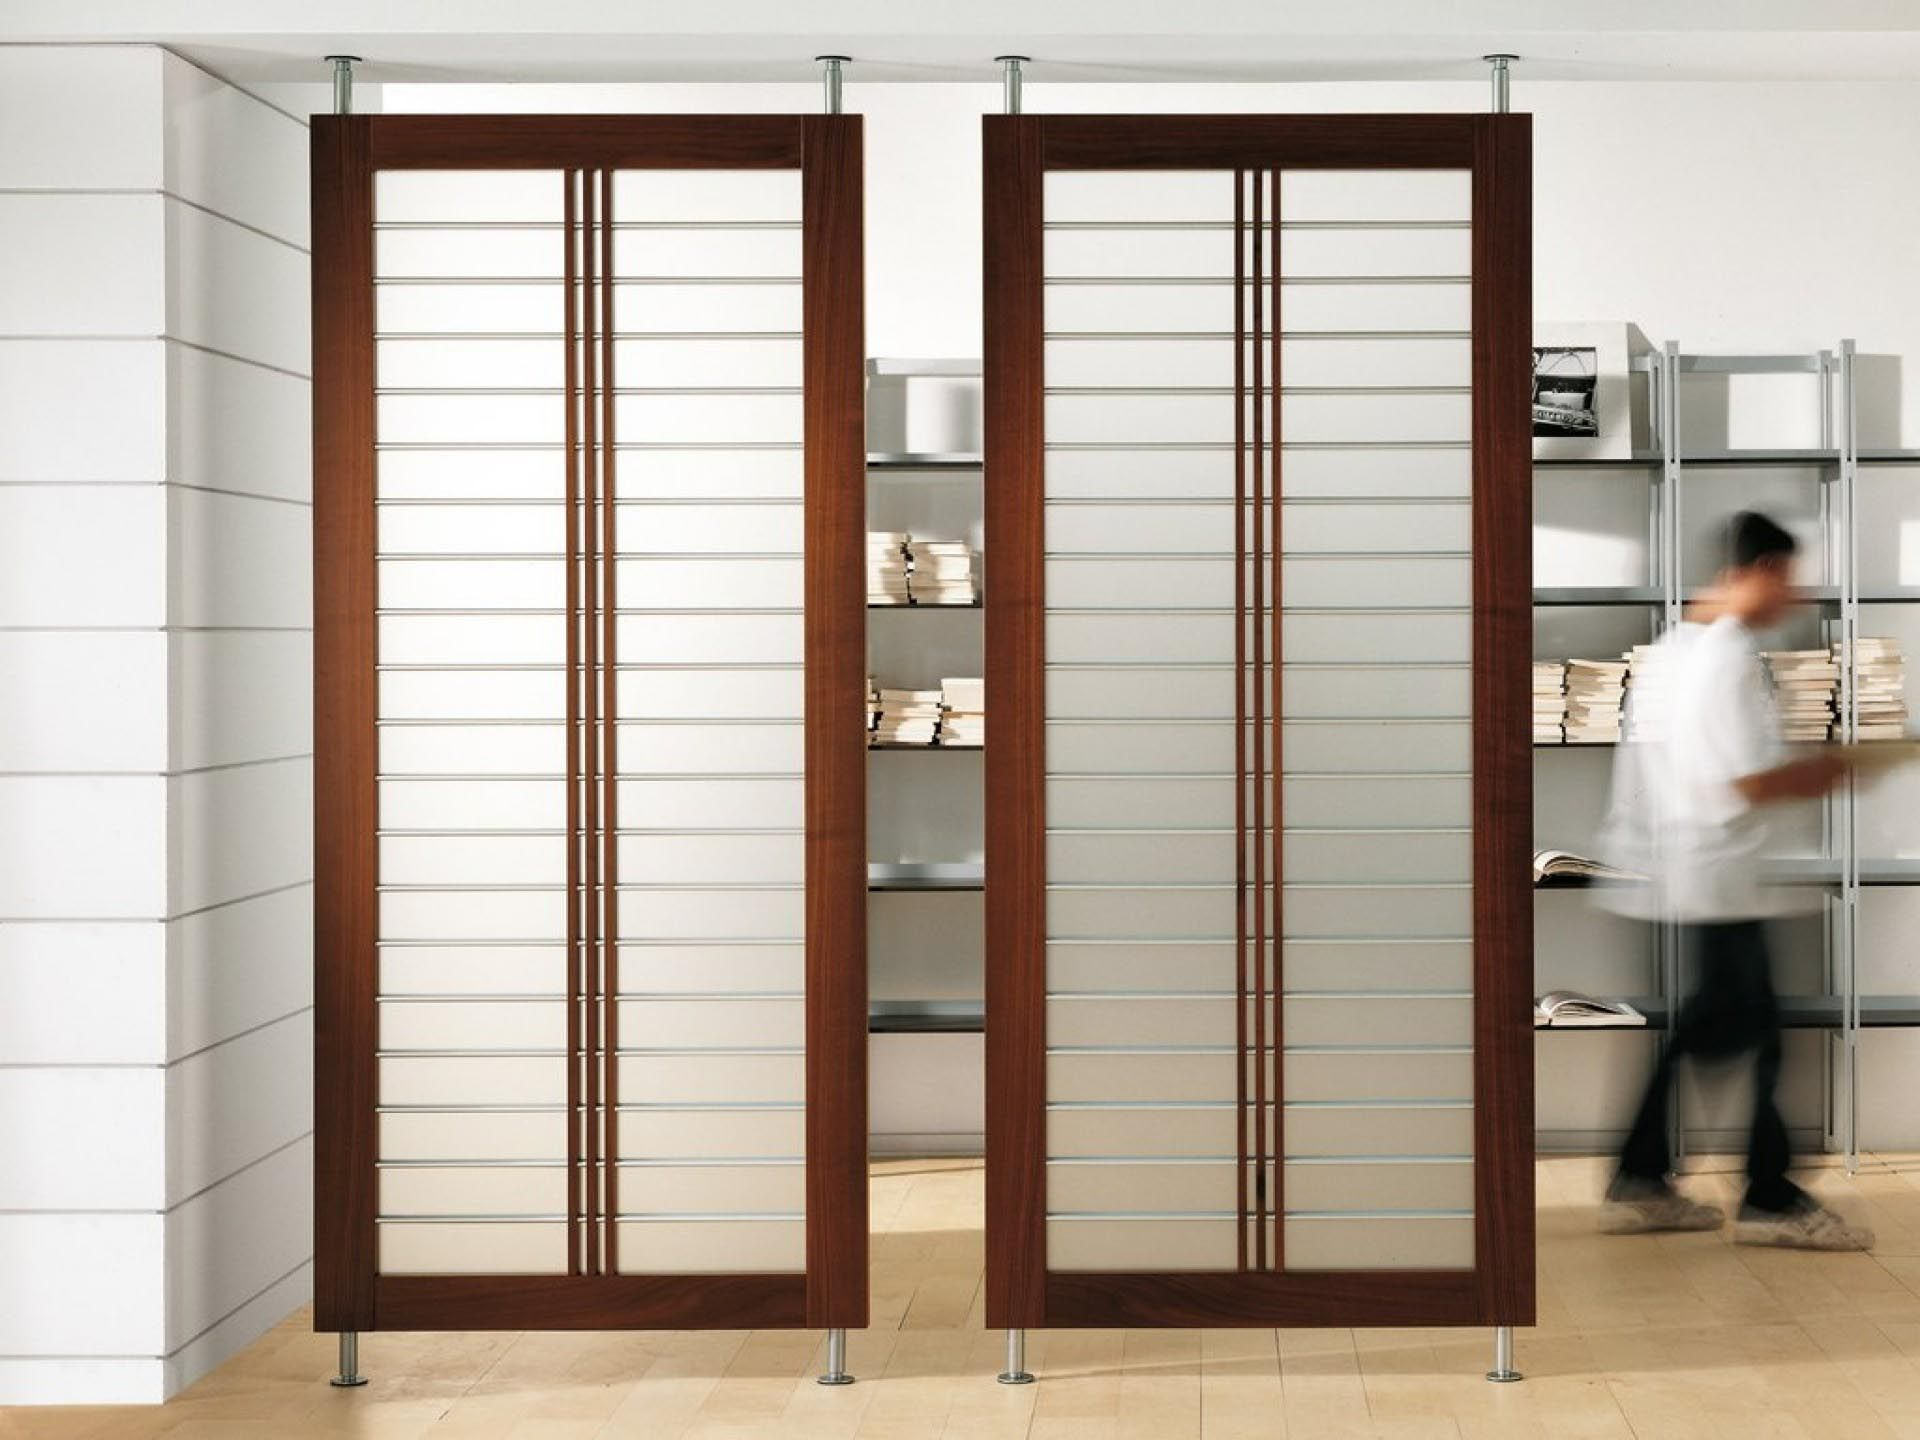 Commercial accordion room dividers room dividers for Commercial room dividers sliding